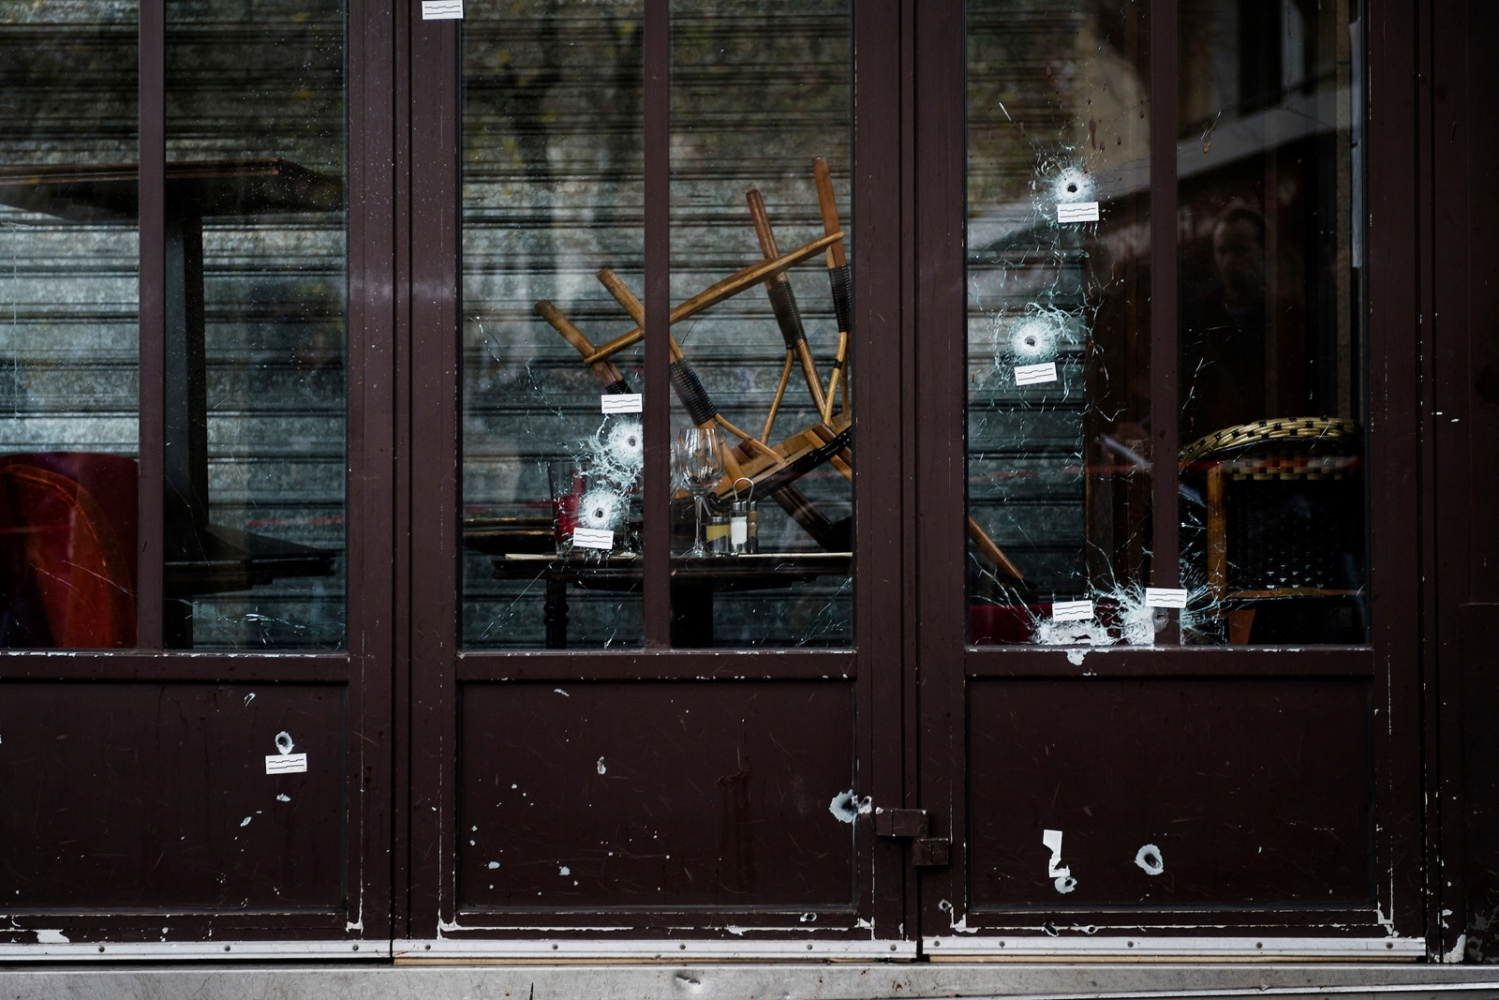 Bullet holes in the windows of one of the restaurants at Rue de la Fontain au Roi, where five people where shot to death in a terrorist attack. Several coordinated terrorist attacks in Paris, France, left over a hundred people dead.